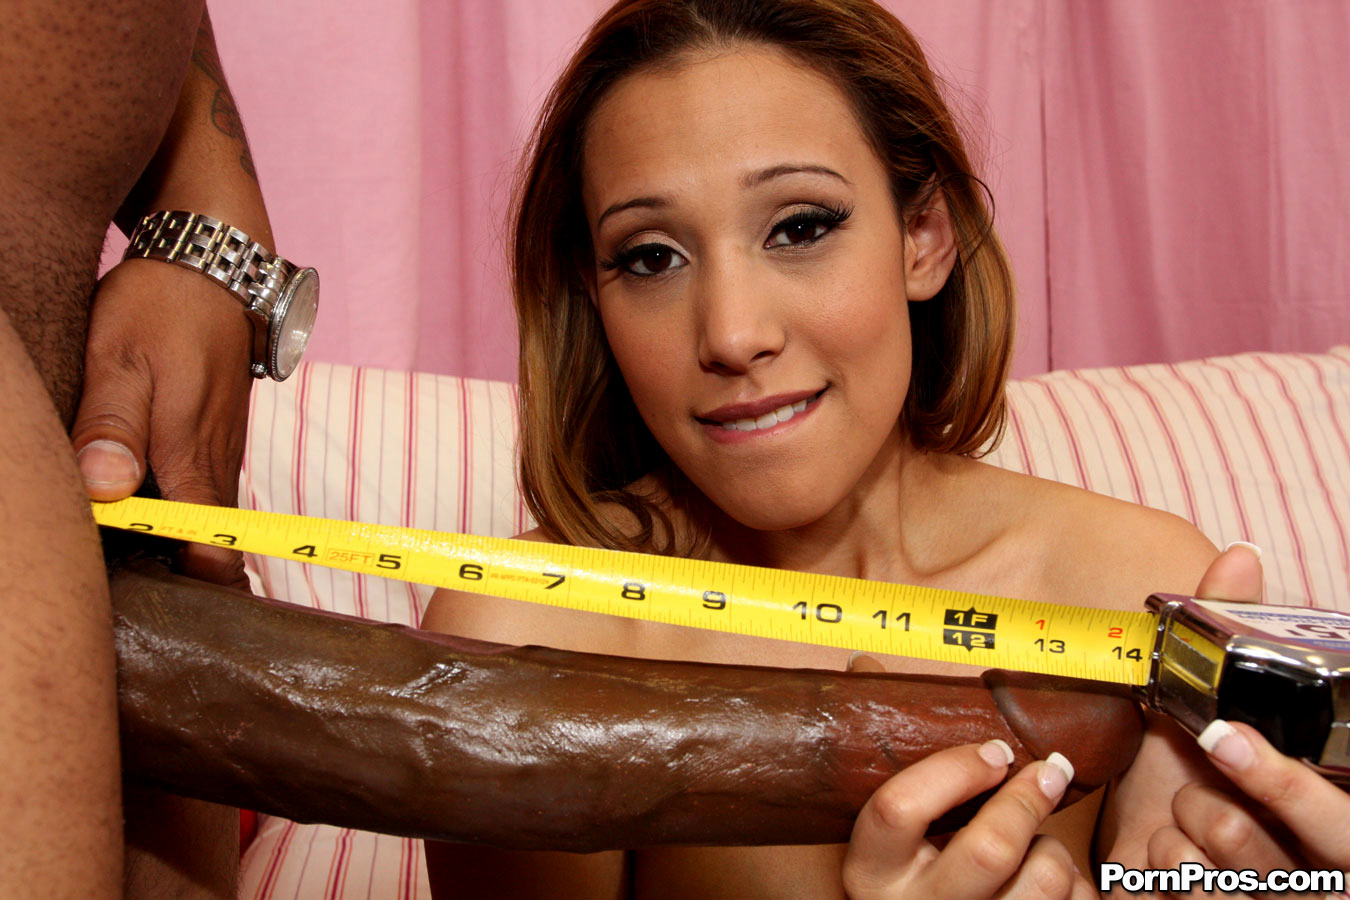 Taryn kemp hot latina fucks ogs big black cock